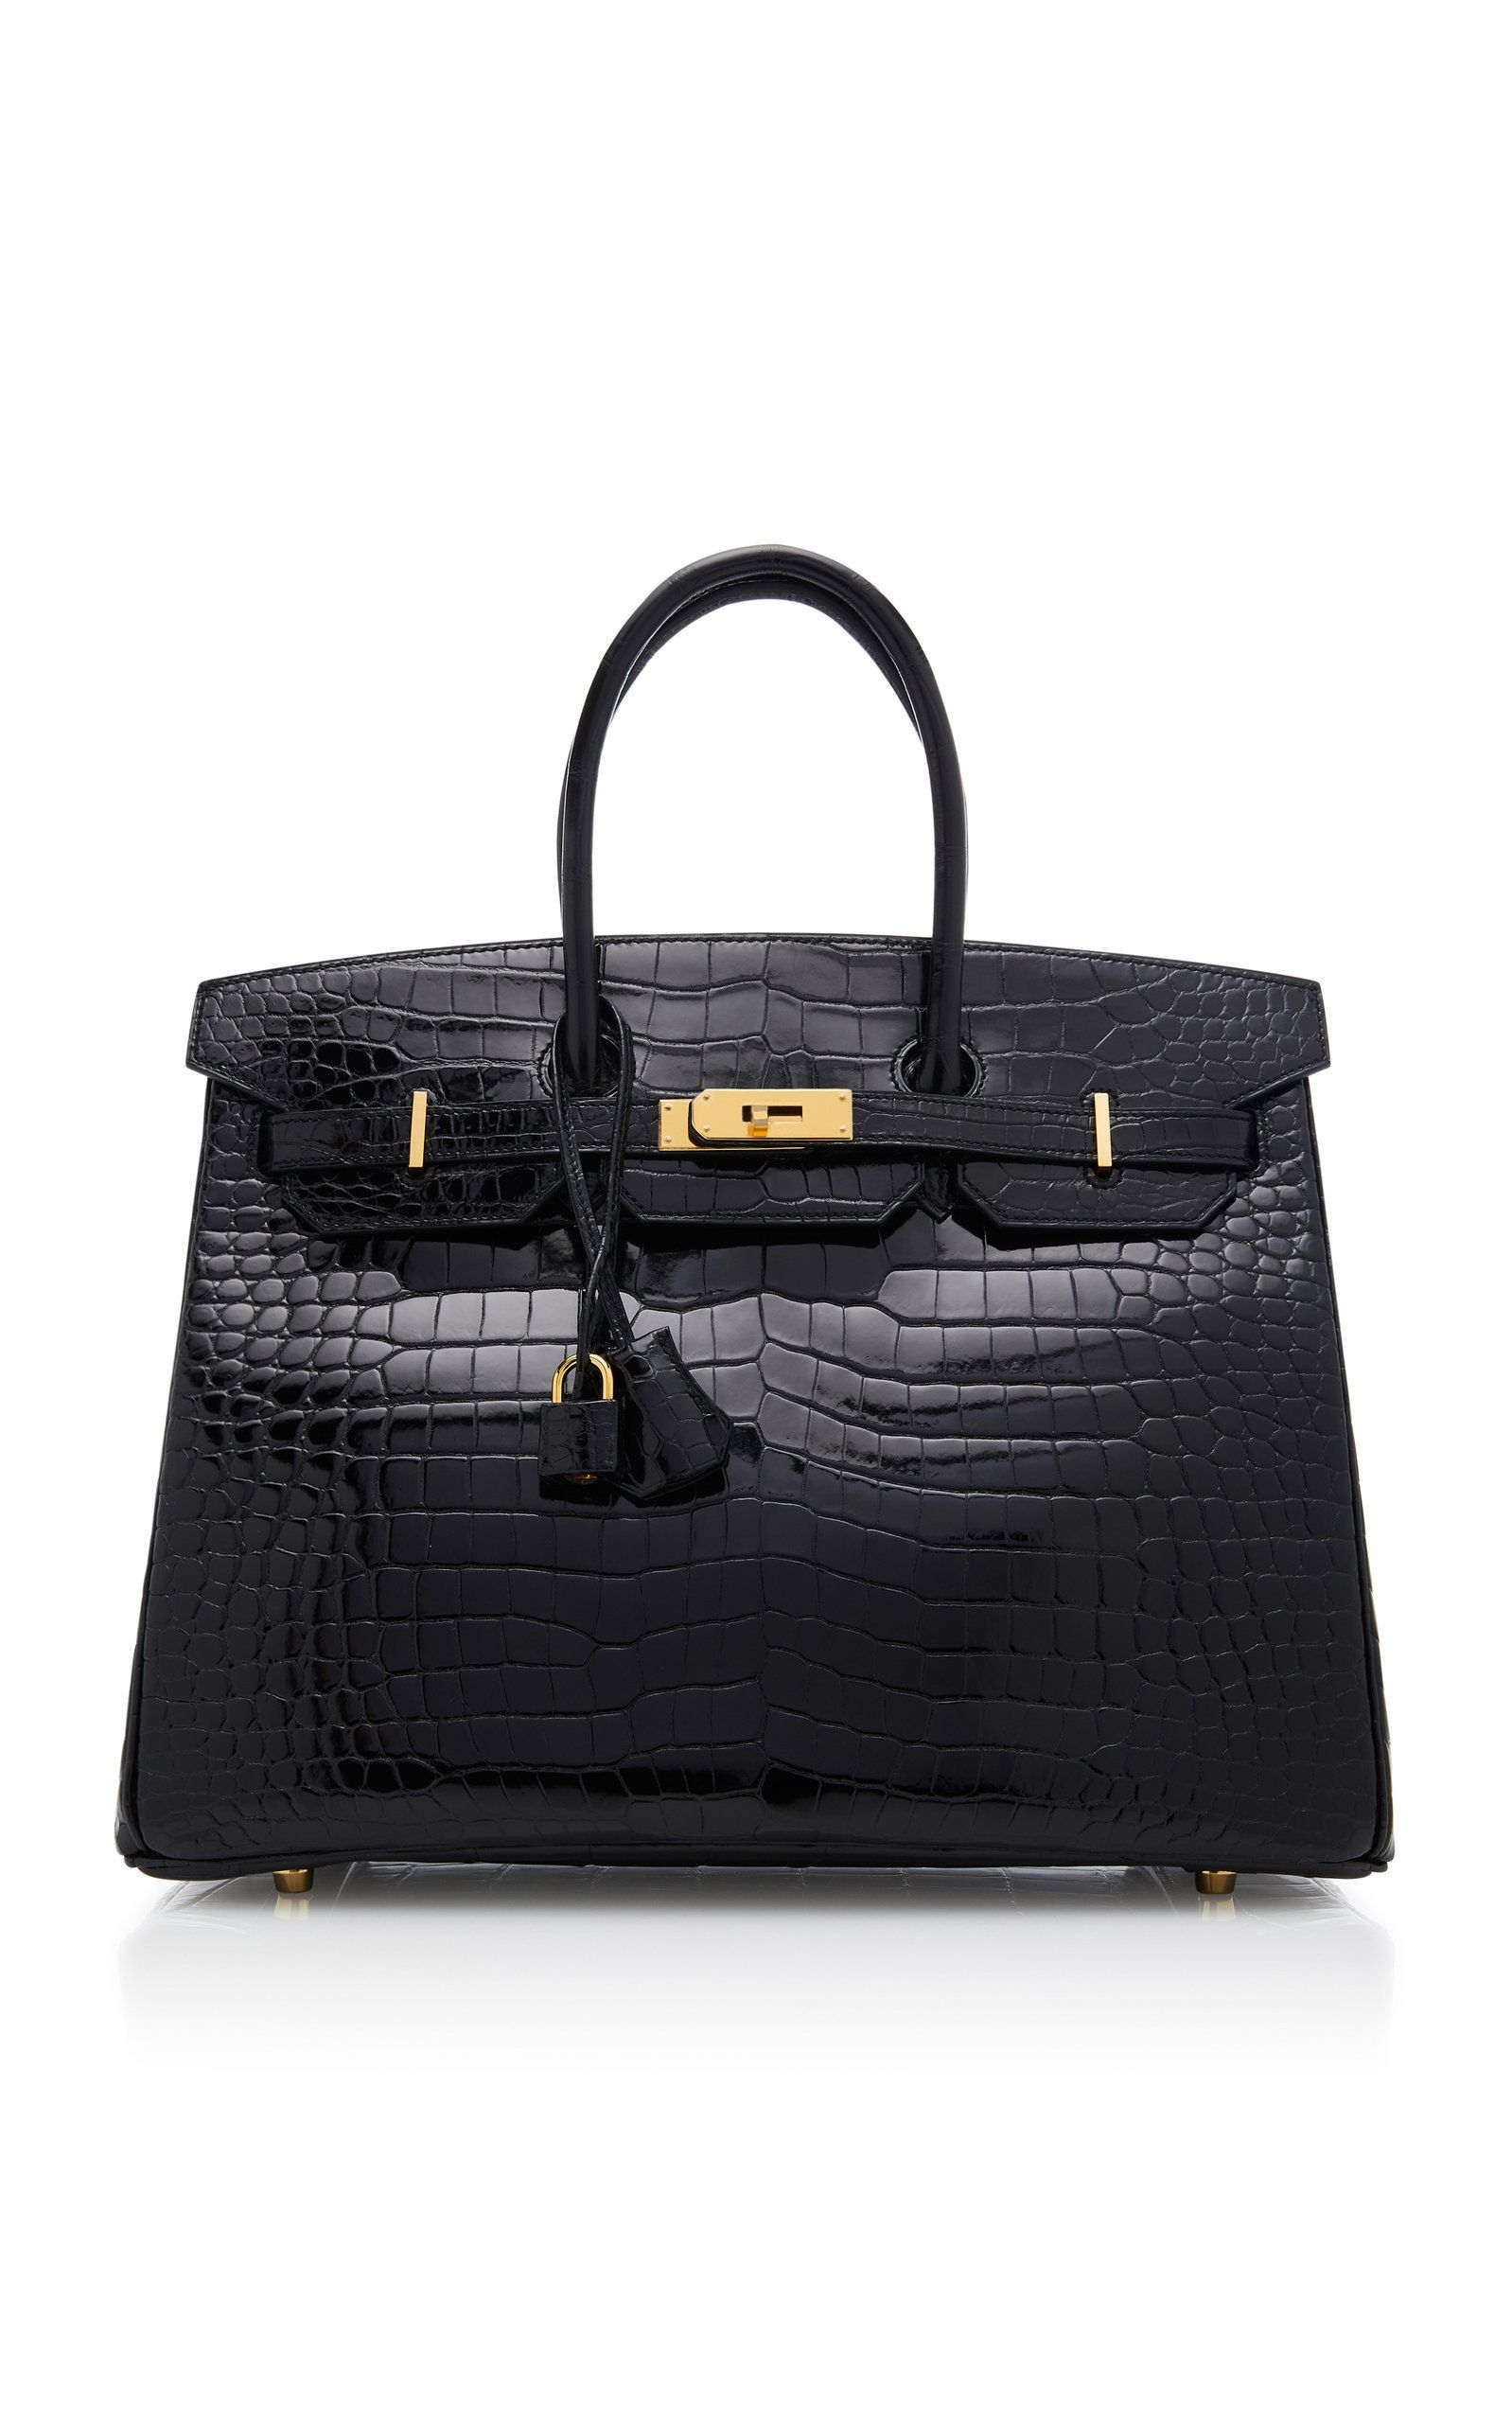 066b662e5c Hermes 35cm Black Porosus Crocodile Birkin by HERMÈS VINTAGE BY HERITAGE  AUCTIONS for Preorder on Moda Operandi